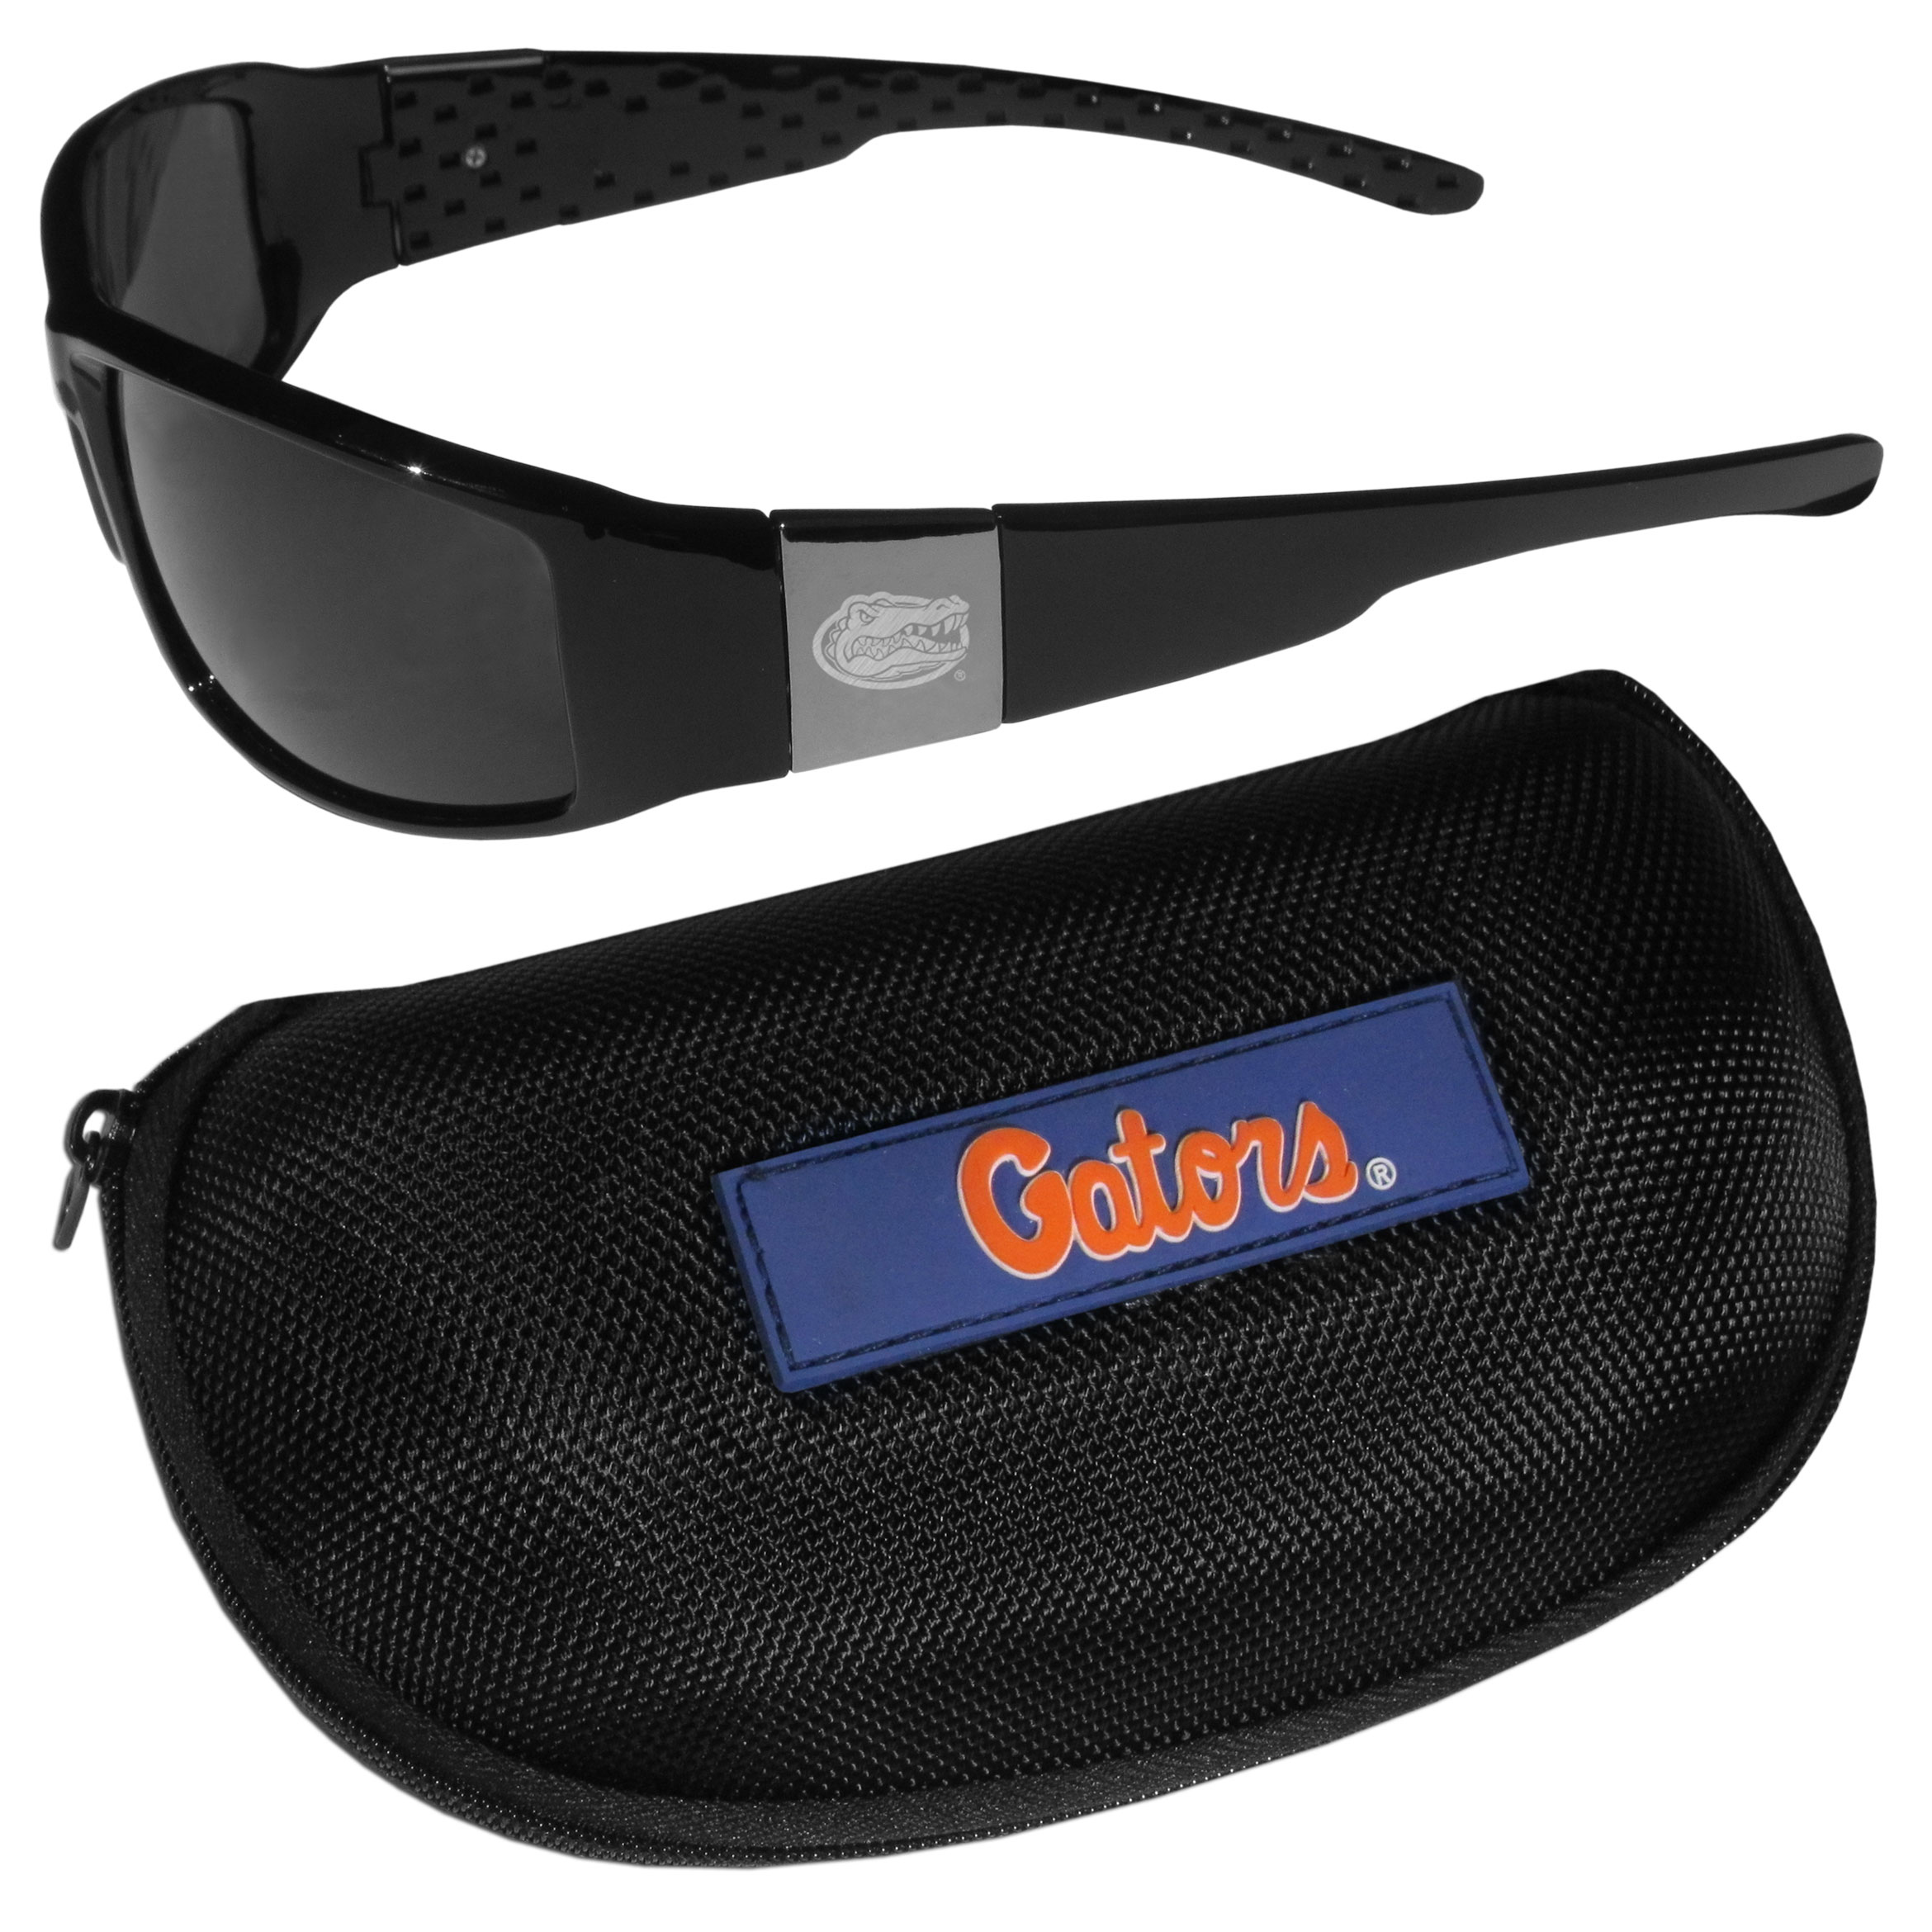 Florida Gators Chrome Wrap Sunglasses and Zippered Carrying Case - These designer inspired frames have a sleek look in all black with high-polish chrome Florida Gators shields on each arm with an etched logo. The shades are perfect any outdoor activity like; golfing, driving, hiking, fishing or cheering on the team at a tailgating event or an at home game day BBQ with a lens rating of 100% UVA/UVB for maximum UV protection. The high-quality frames are as durable as they are fashionable and with their classic look they are perfect fan accessory that can be worn everyday for every occasion. The shades come with a zippered hard shell case to keep your sunglasses safe.